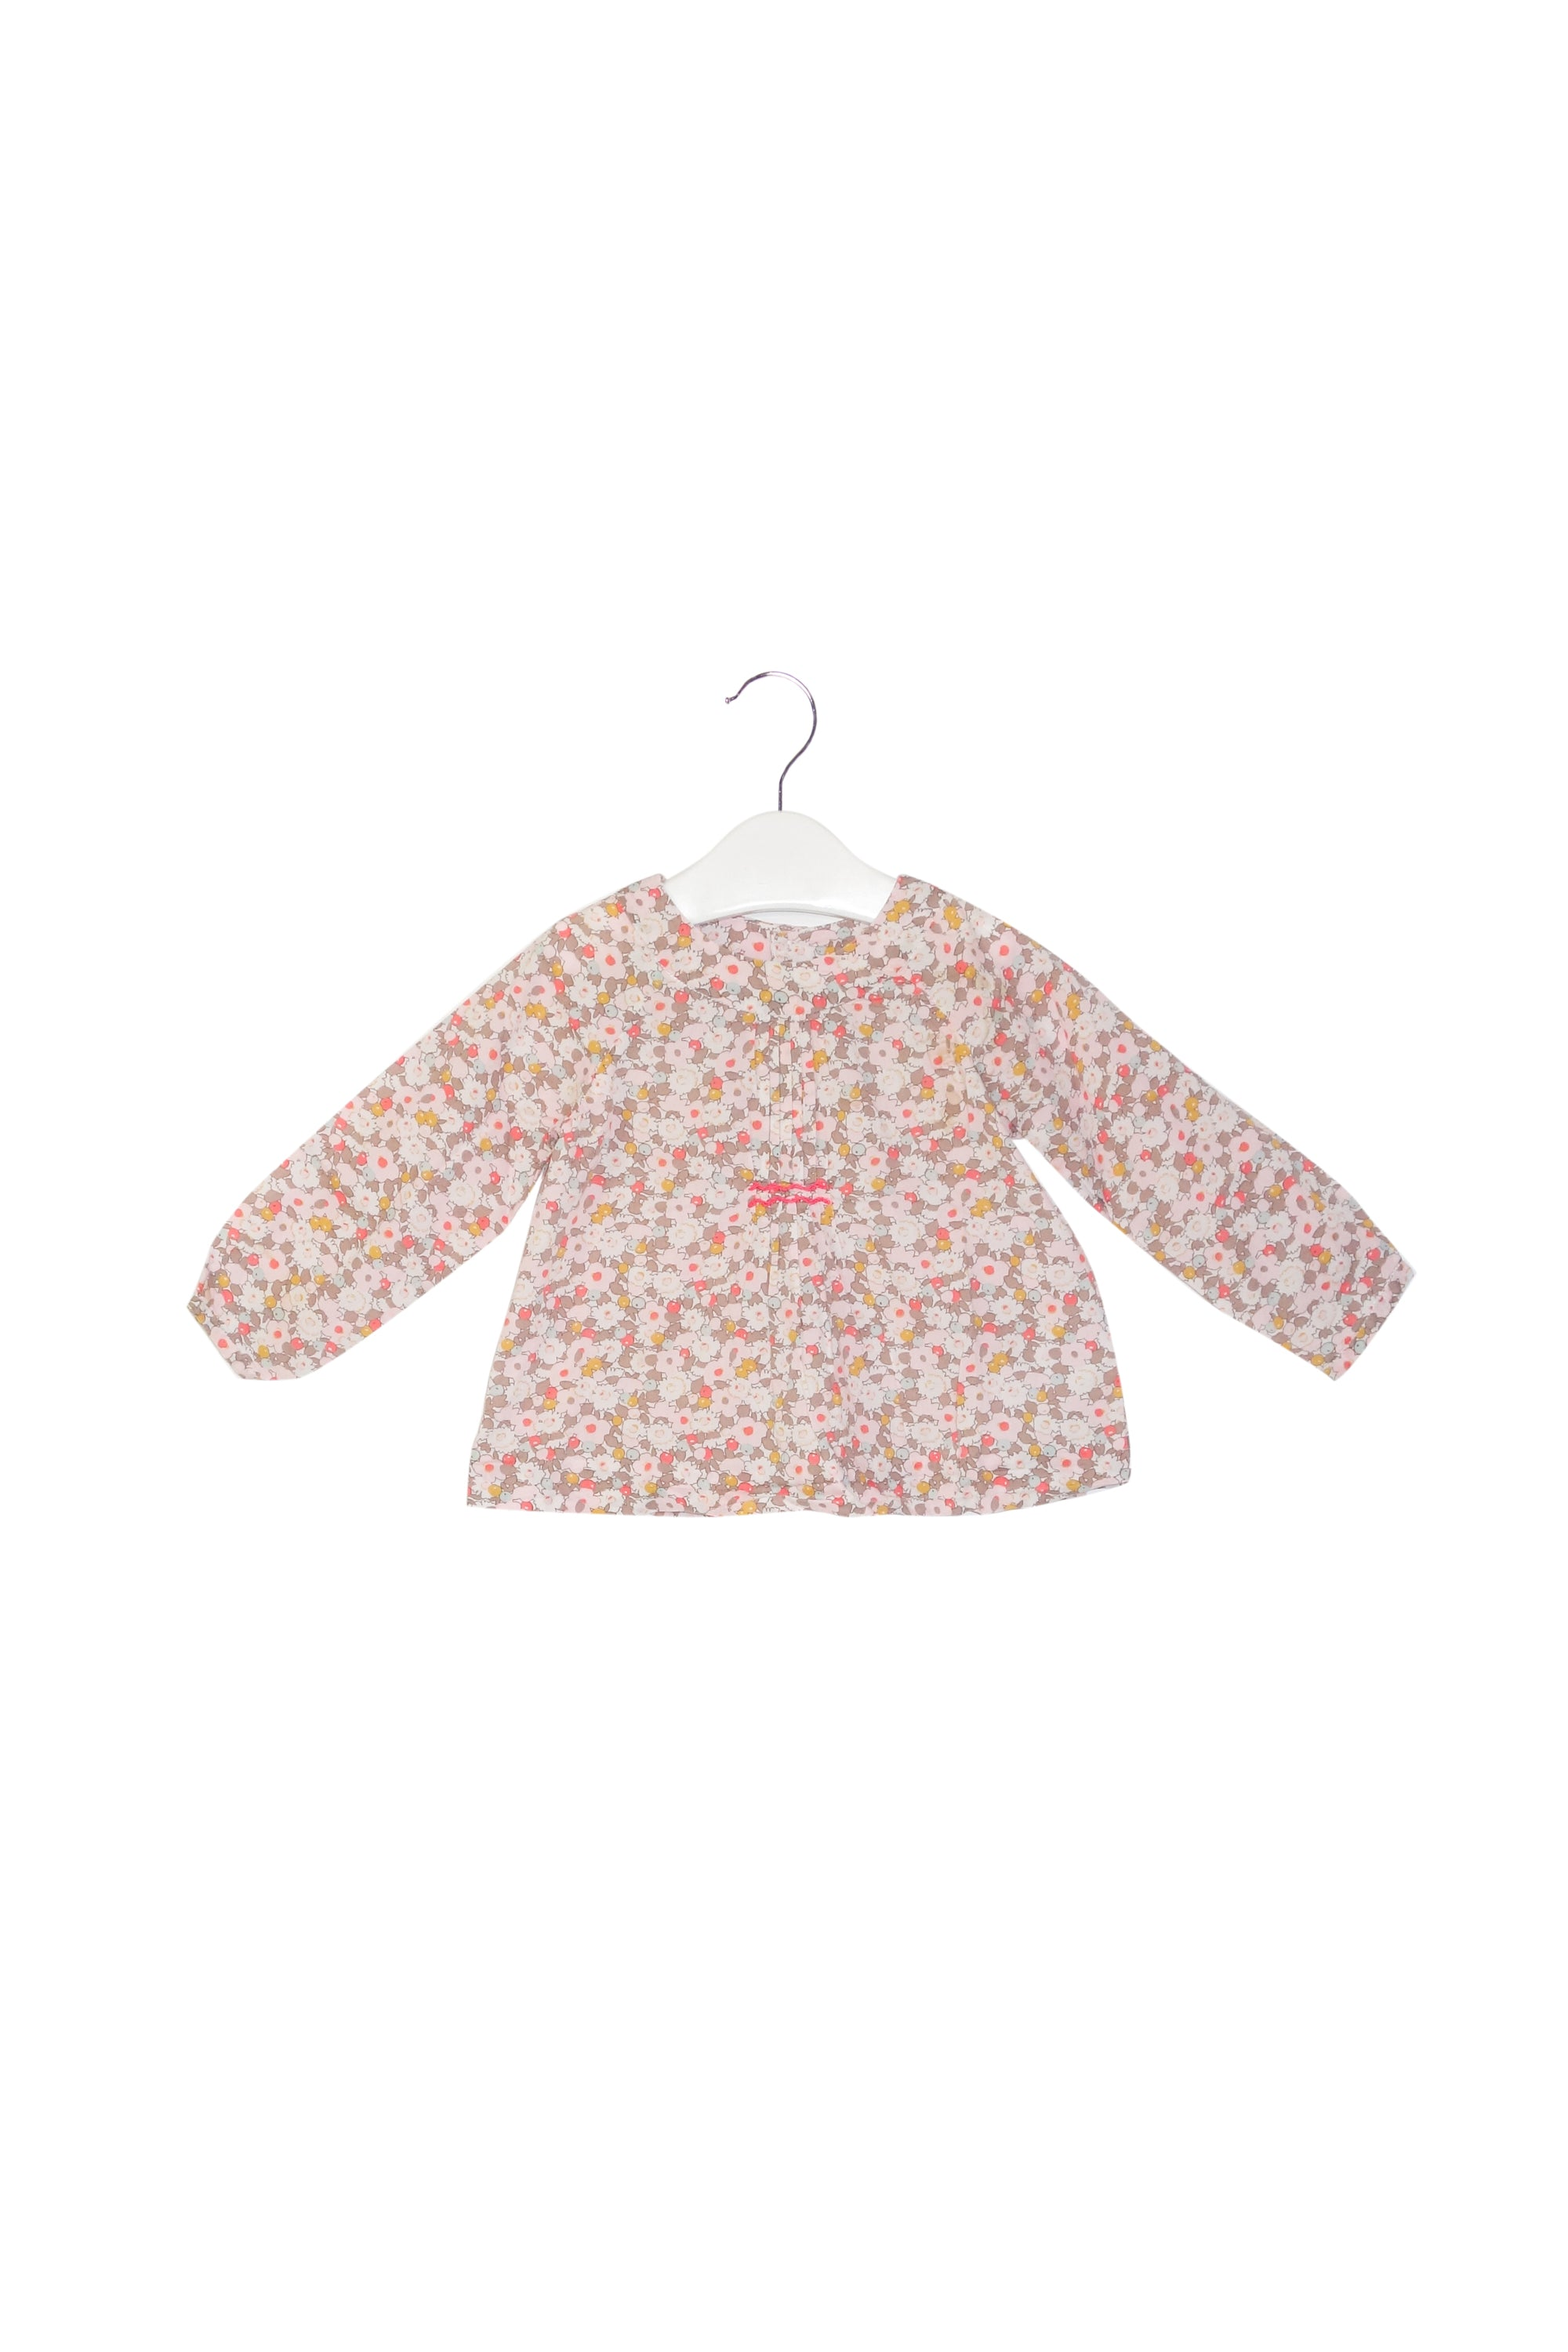 10013633 Jacadi Baby ~ Top 6-12M at Retykle